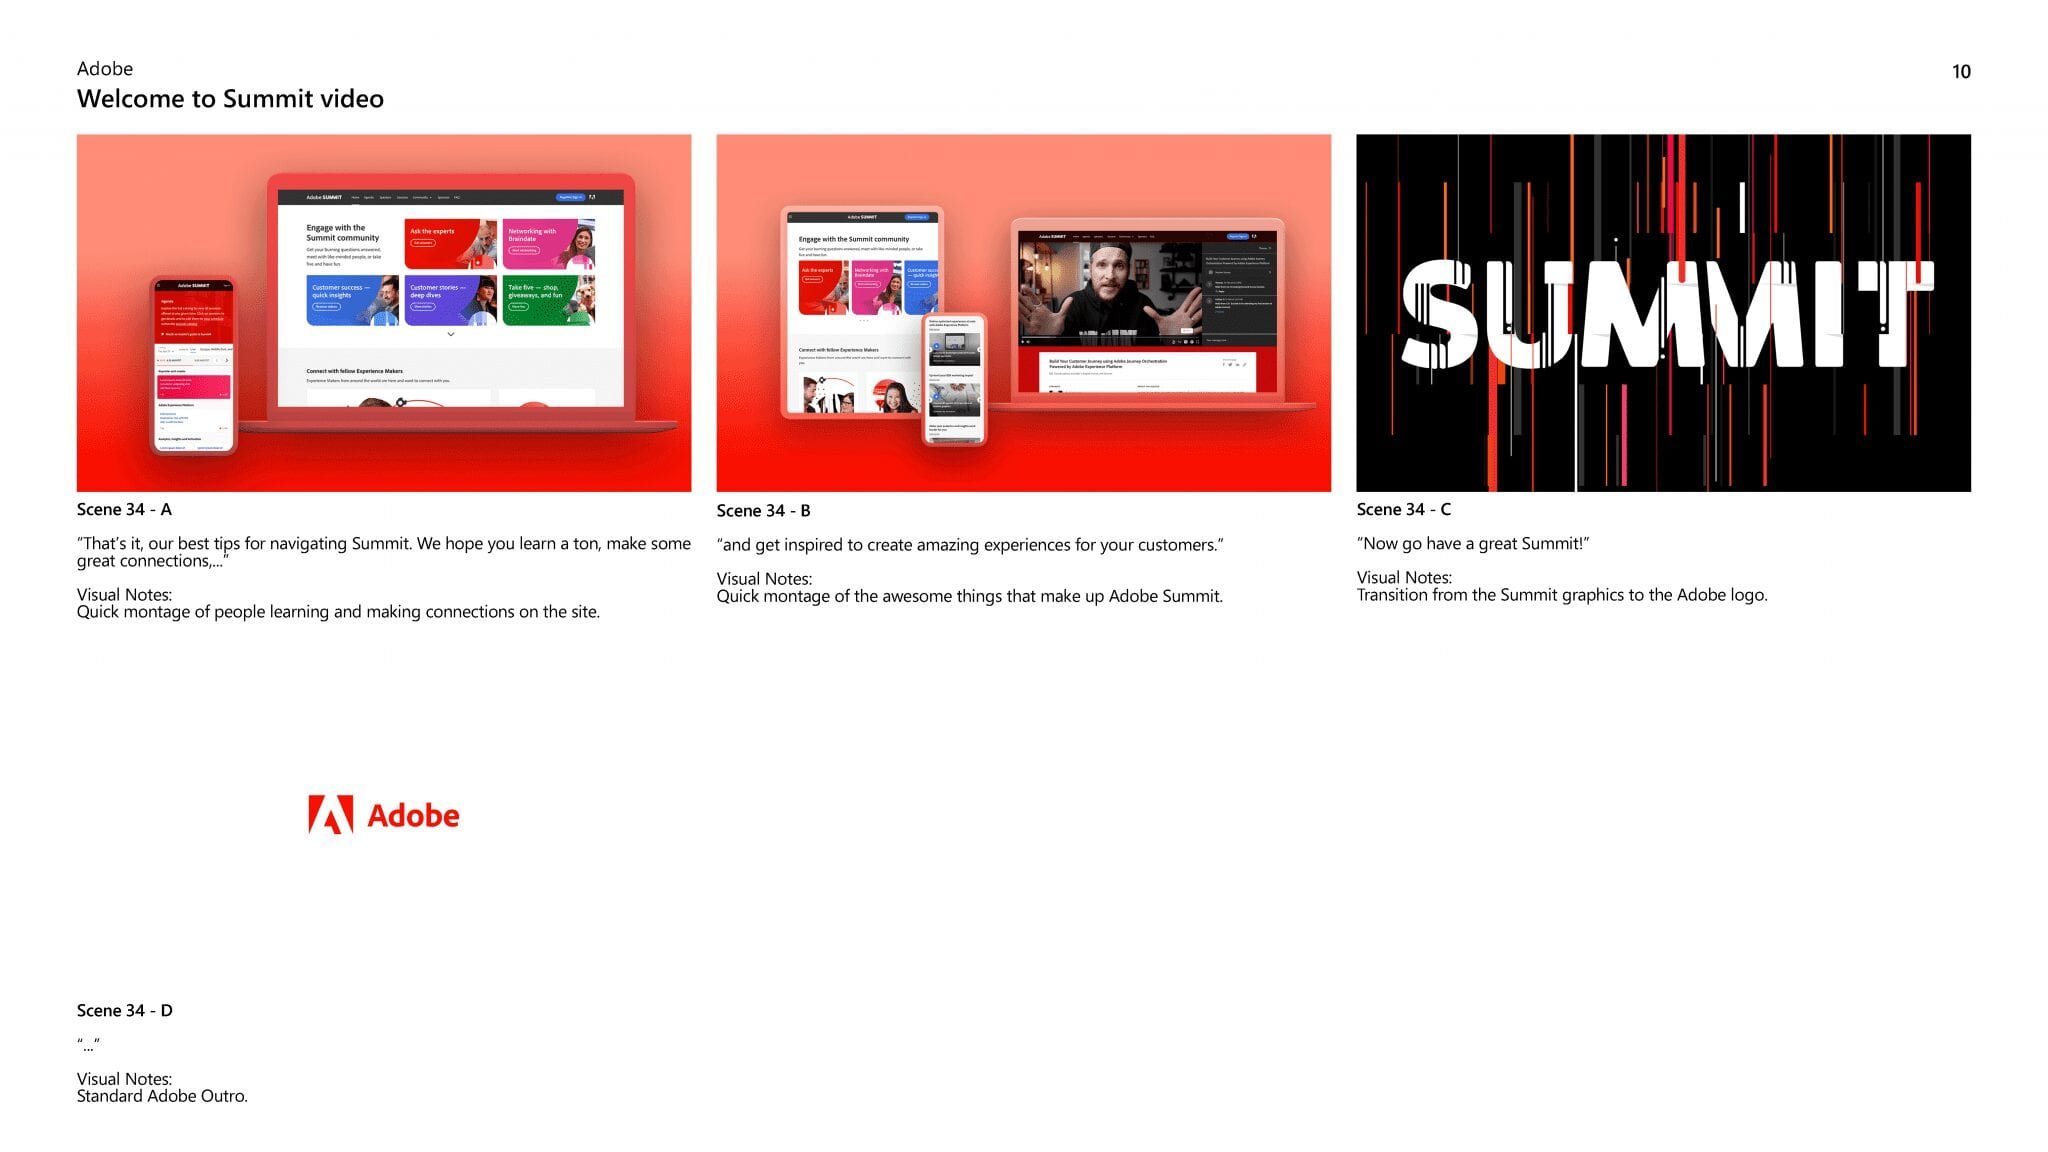 Adobe-Welcome-To-Summit-Video-V4_Page_11